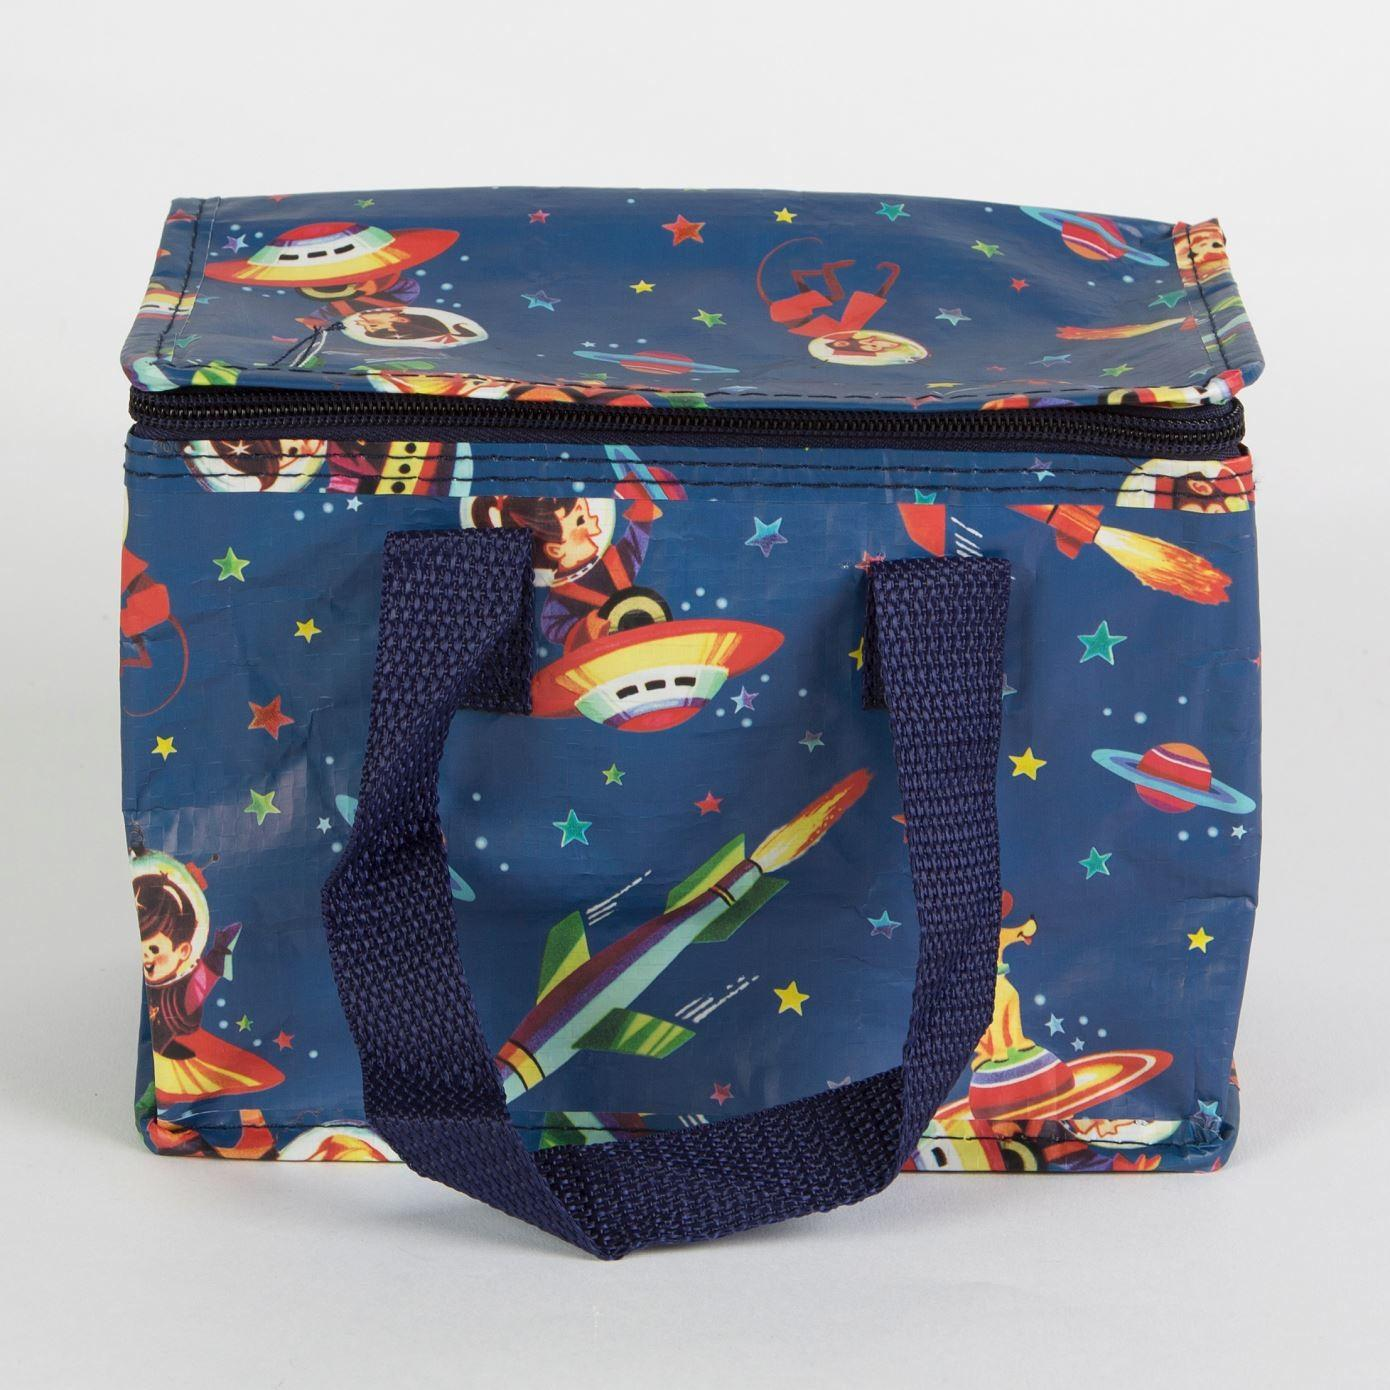 Sass Belle Insulated Recycled Lunch Box Cool Picnic